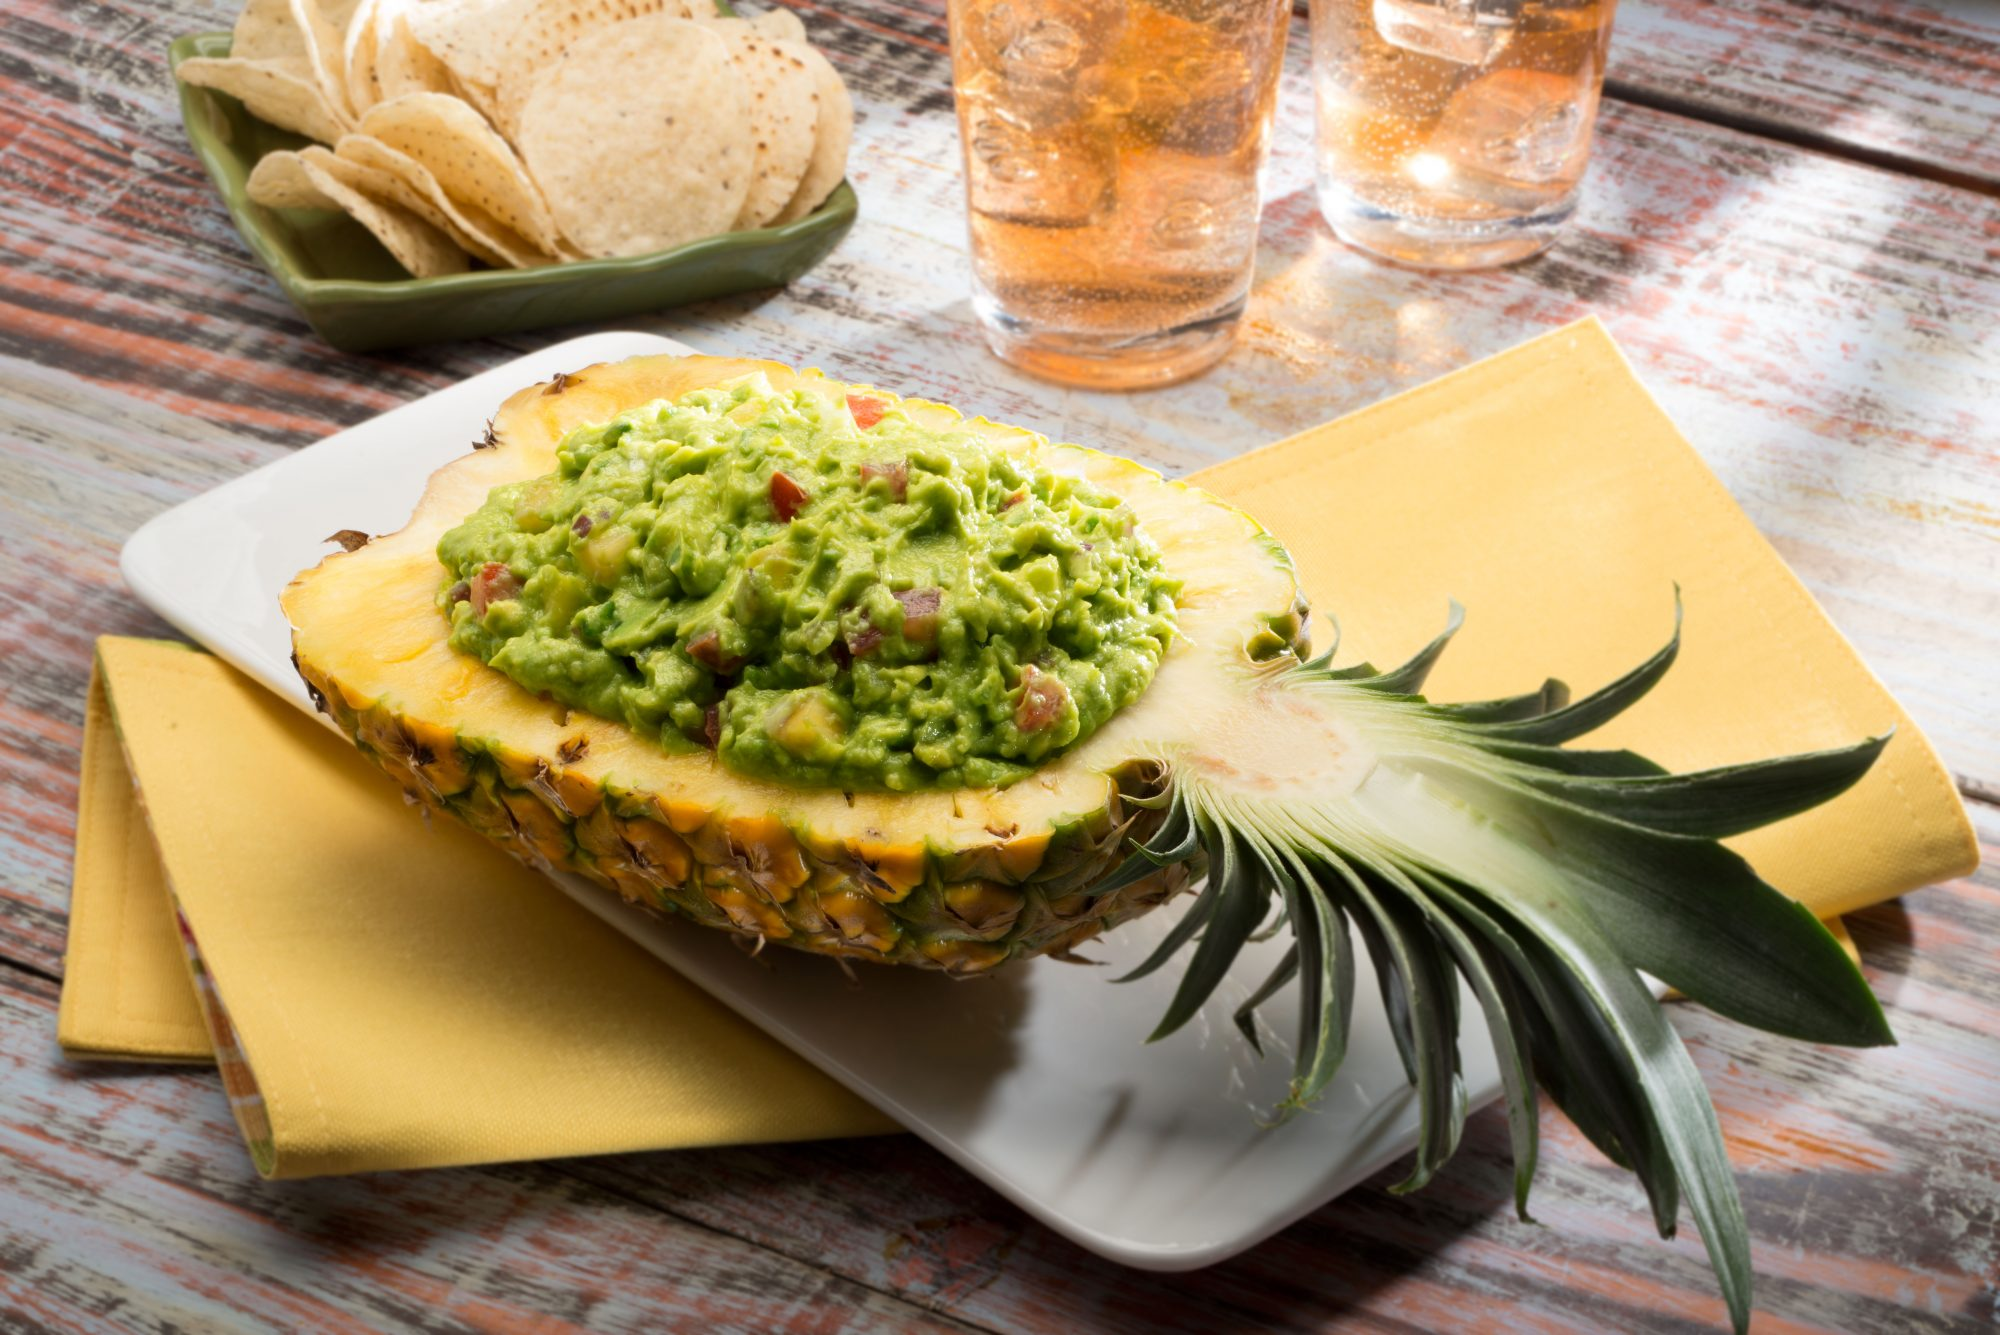 pineapple-guacamole-bowl-avocado